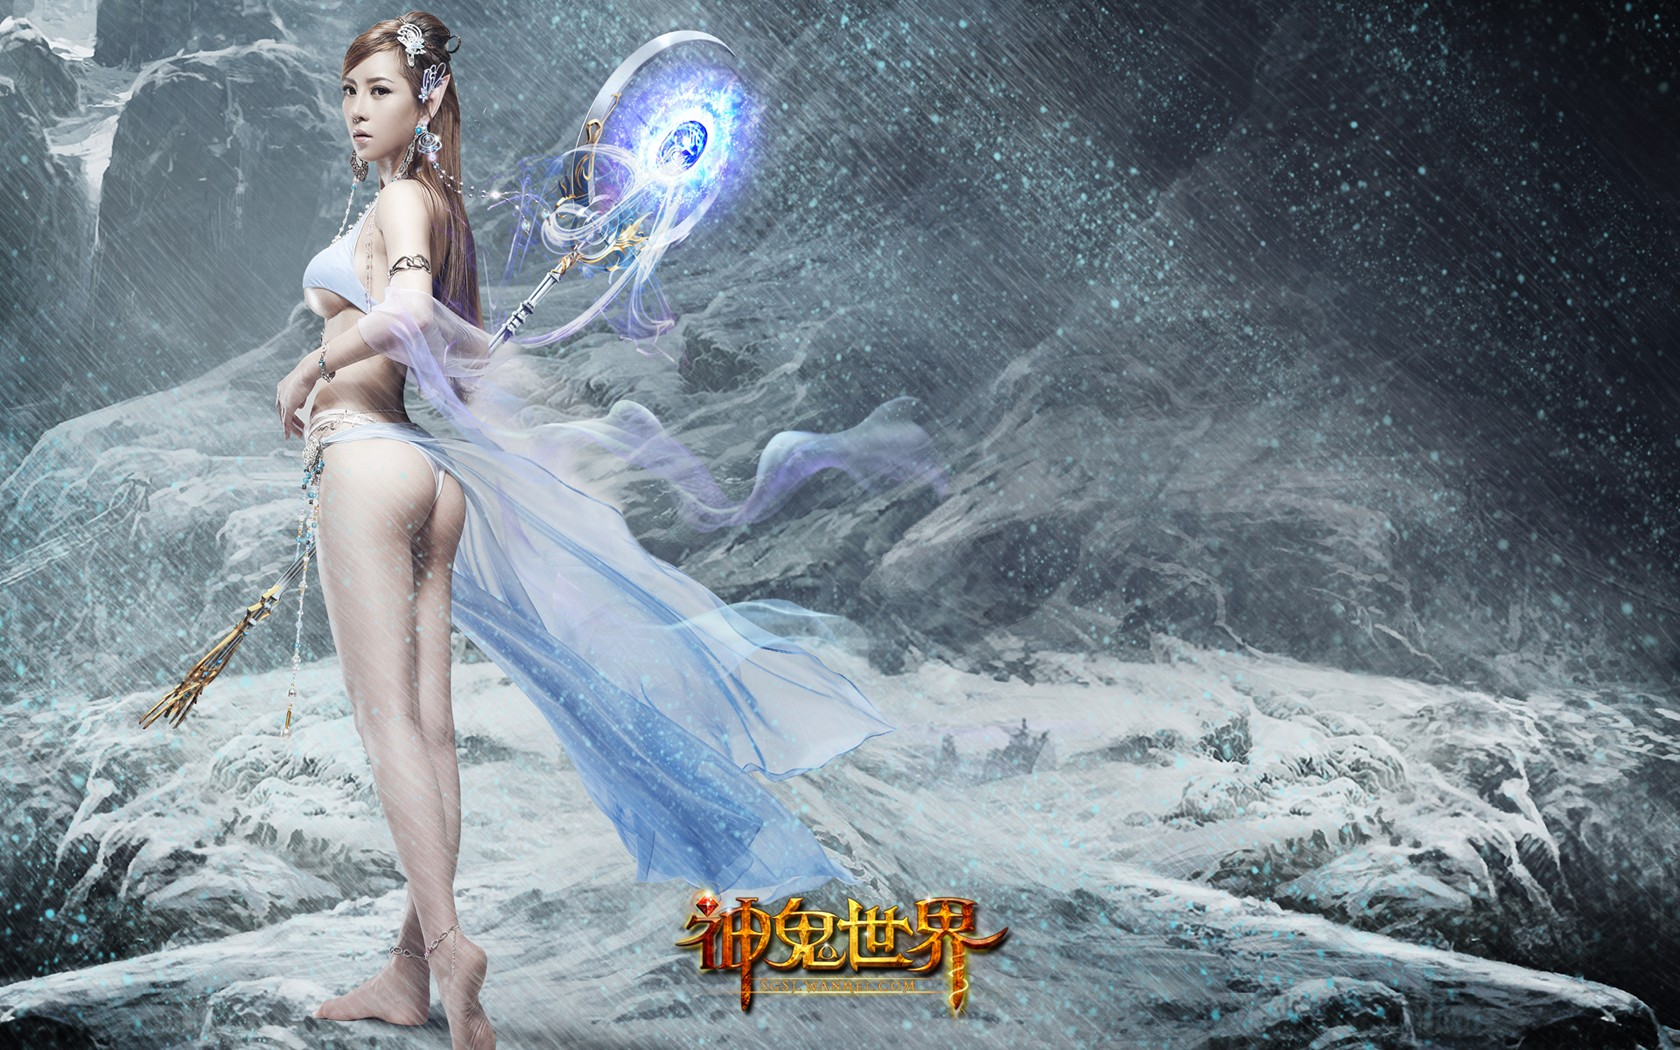 Sexy mmorpg girls hentai movie